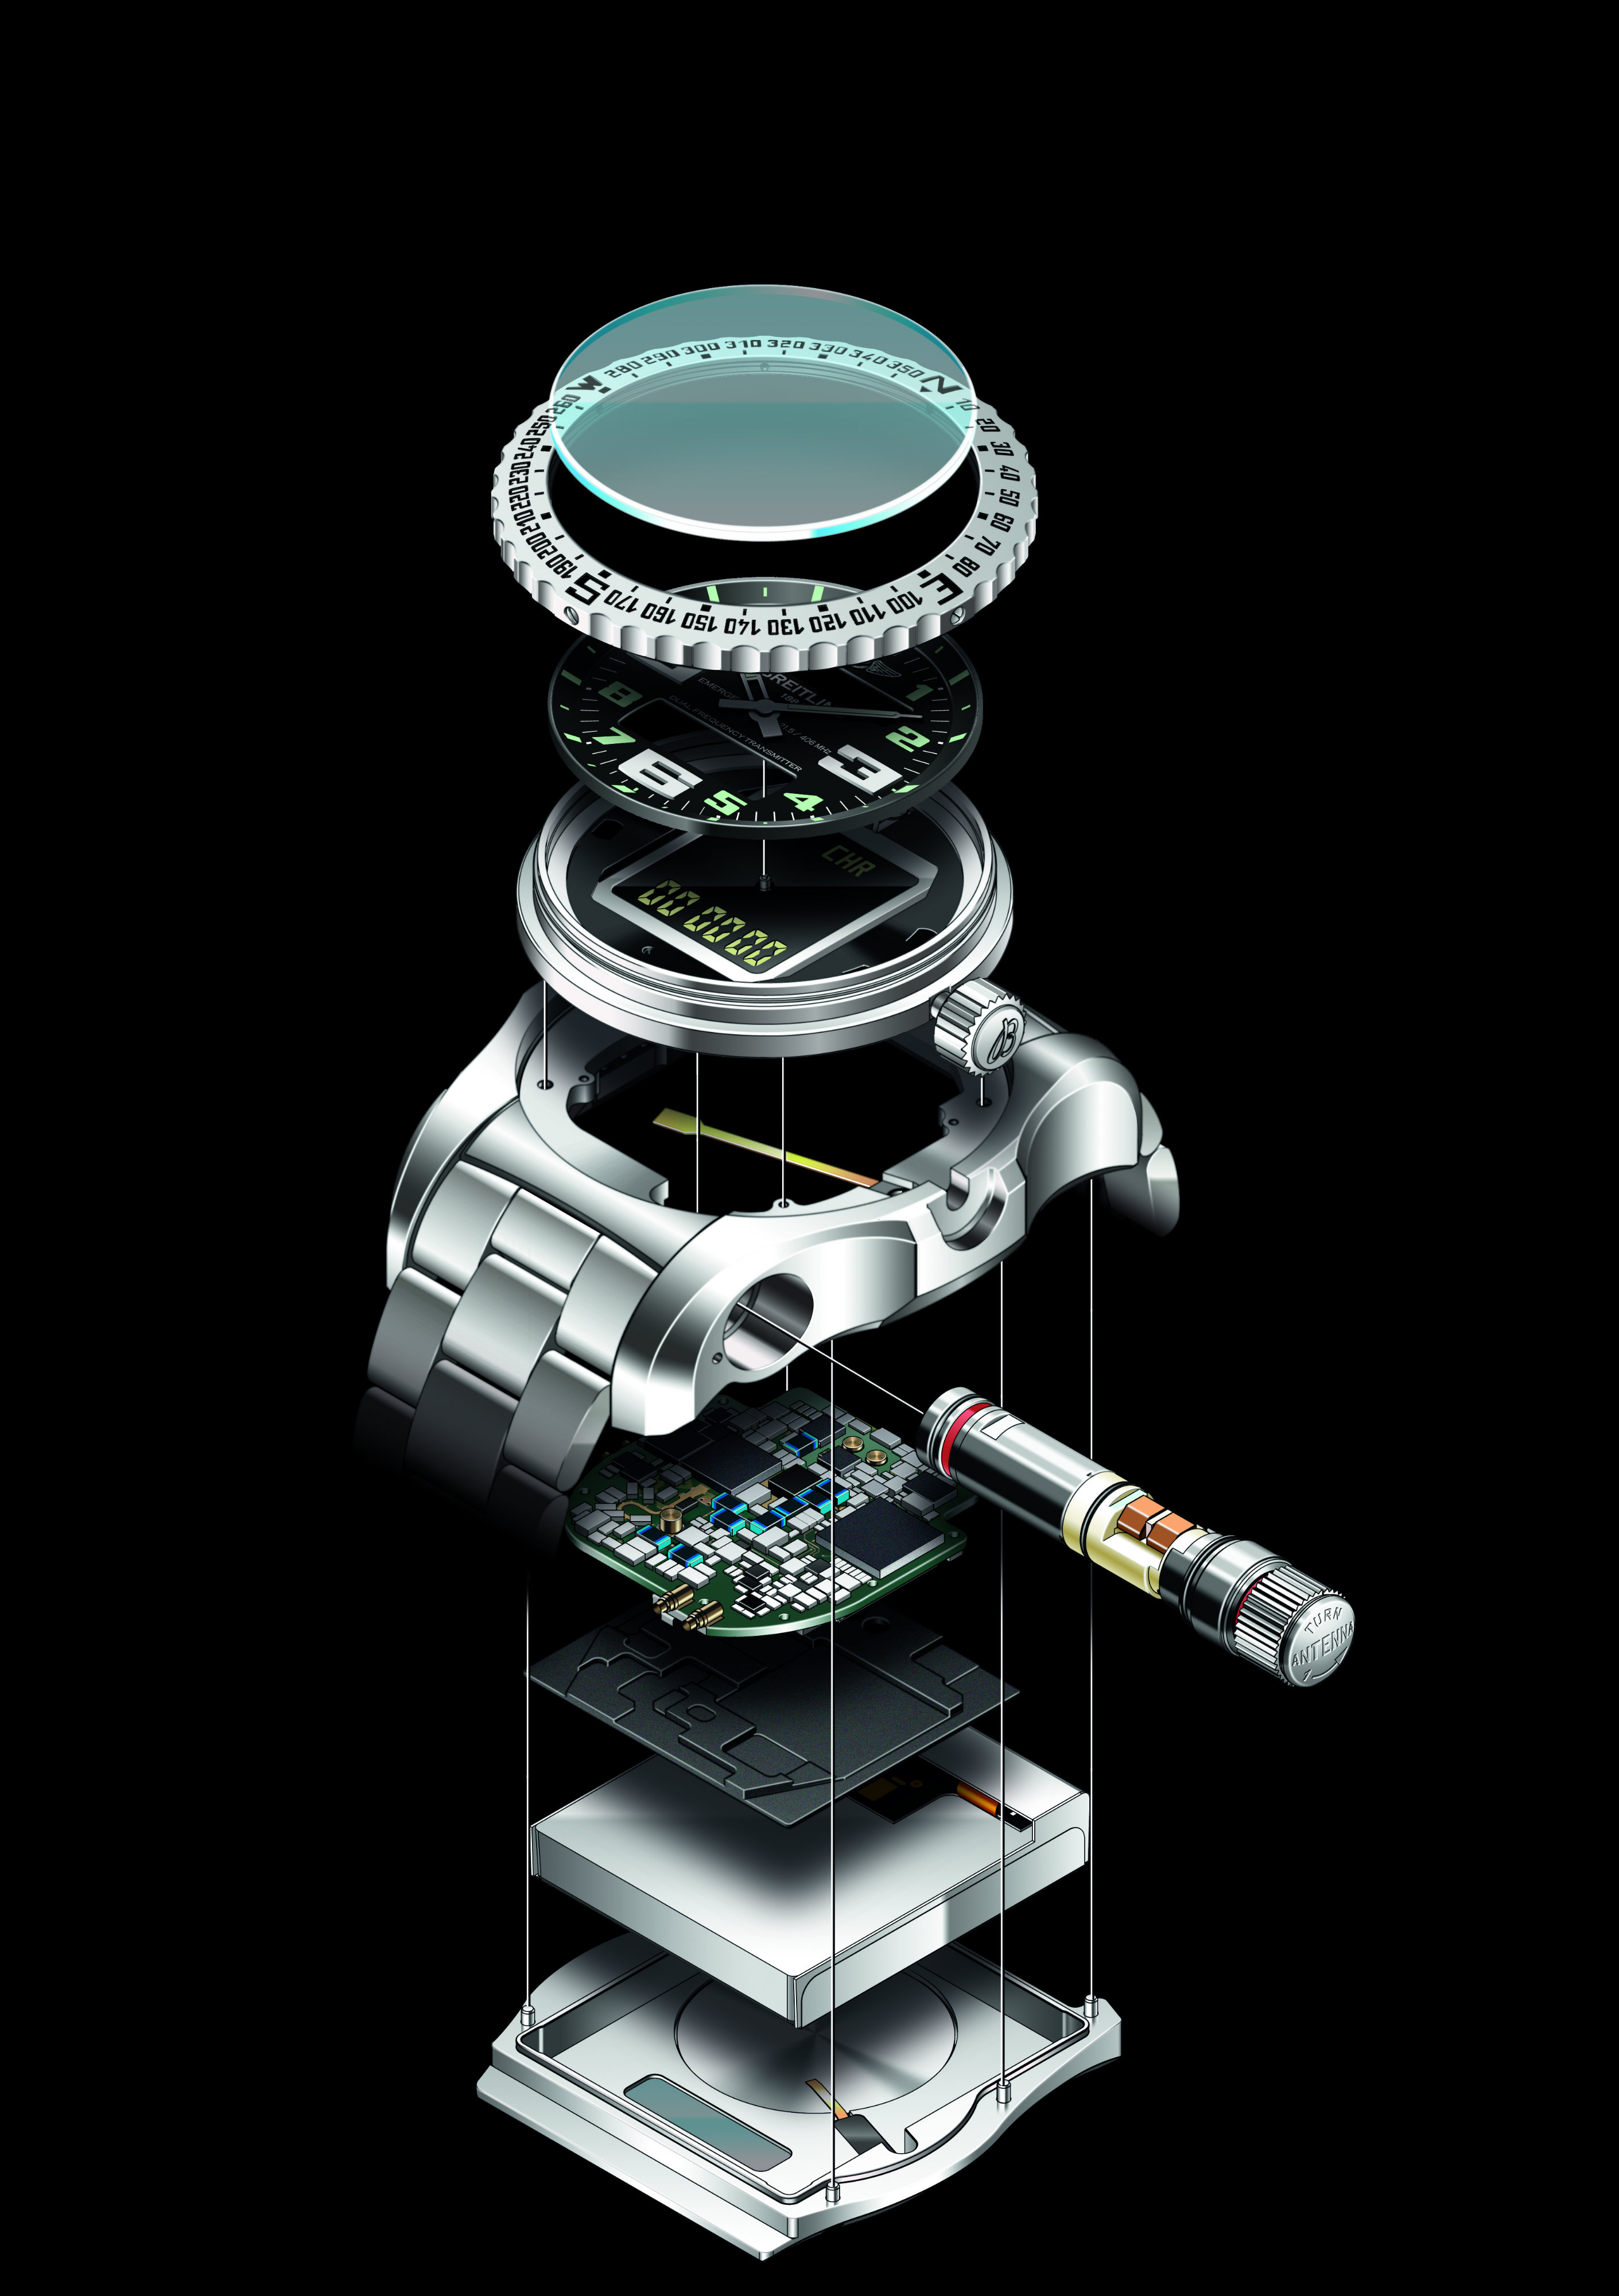 Where bespoke European watchmakers are focusing their